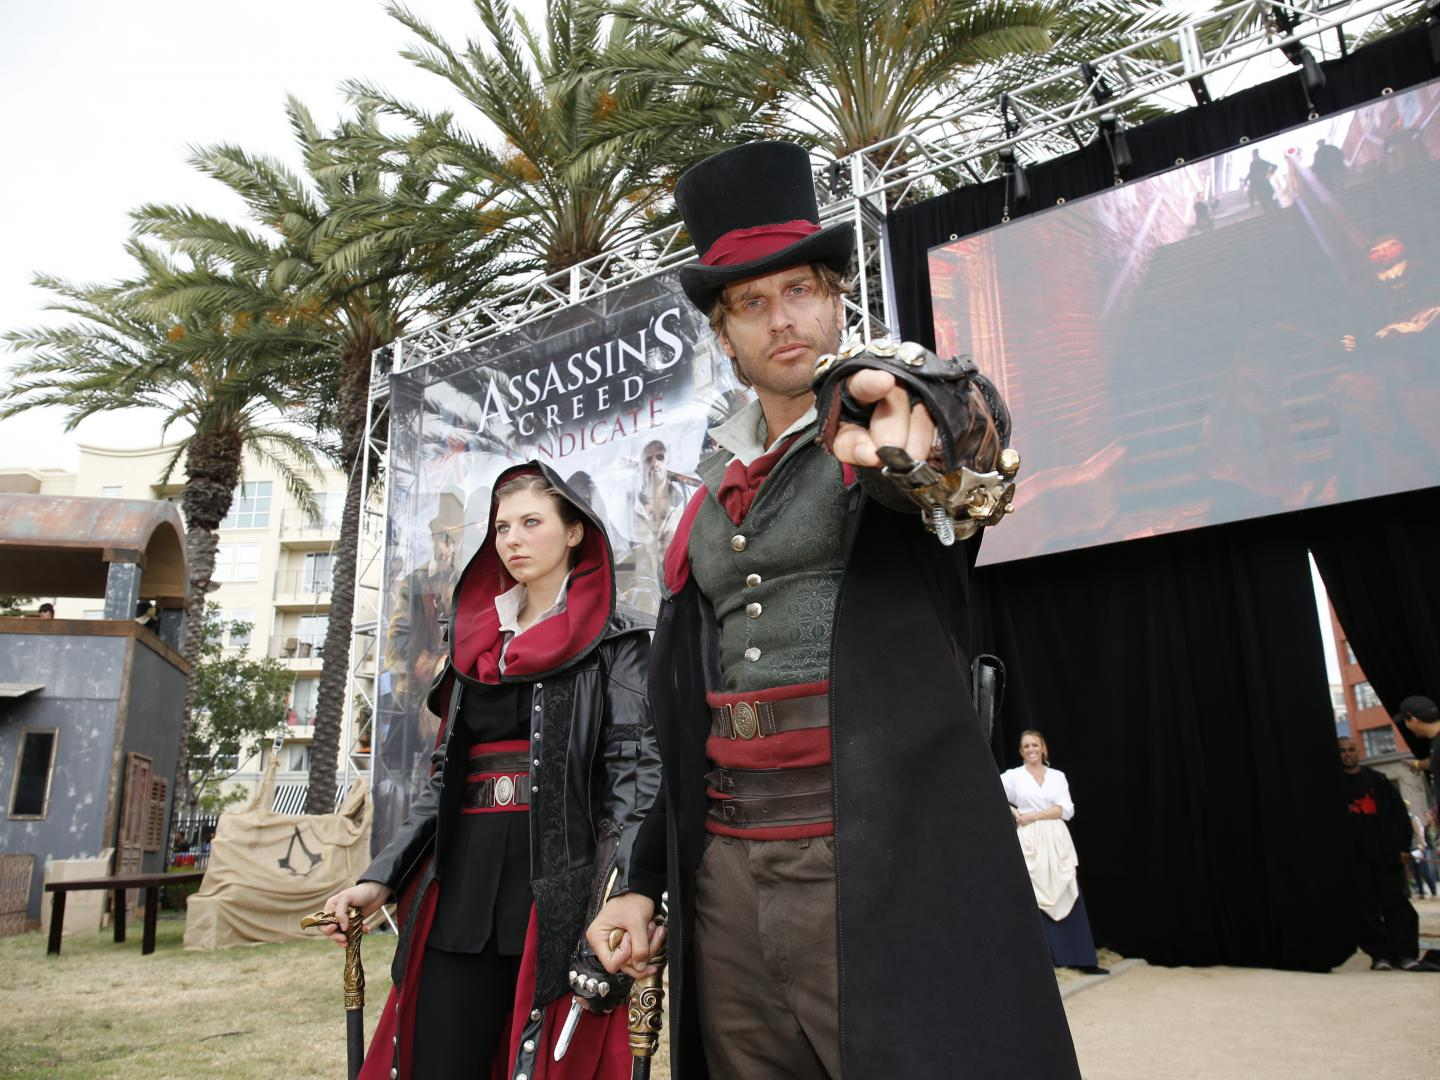 Branded Obstacle Course Inspired by Assassin's Creed Video Game at San Diego Comic Con Thumbnail